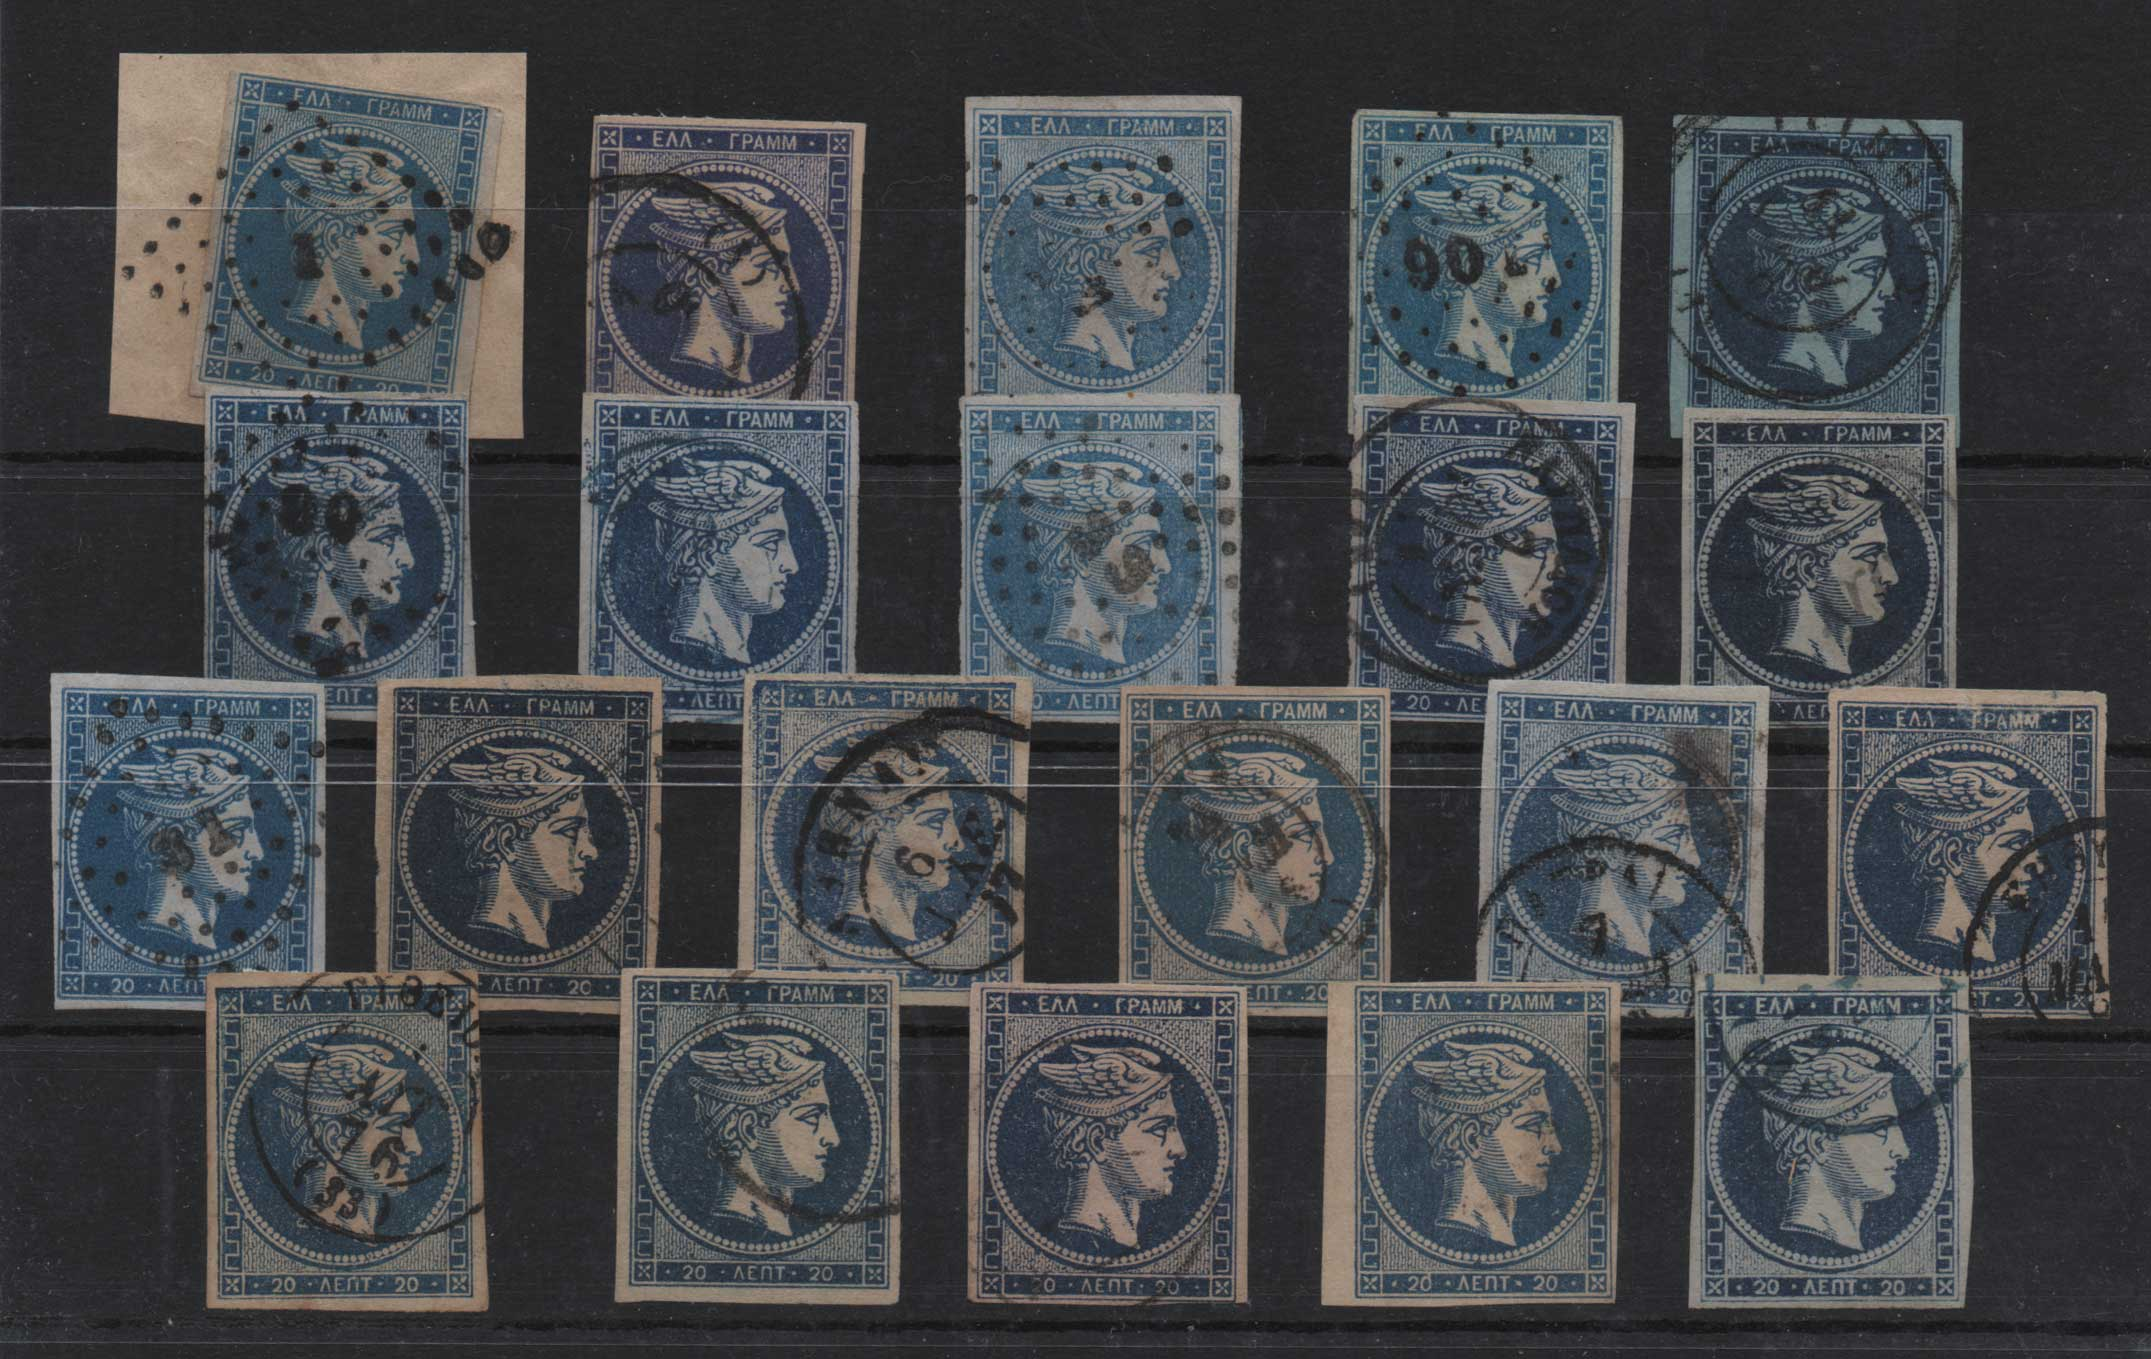 Lot 25 - -  LARGE HERMES HEAD large hermes head -  Athens Auctions Public Auction 75 General Stamp Sale